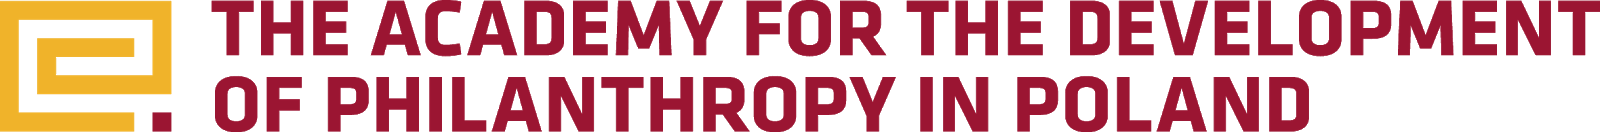 Academy for the Development of Philanthropy in Poland